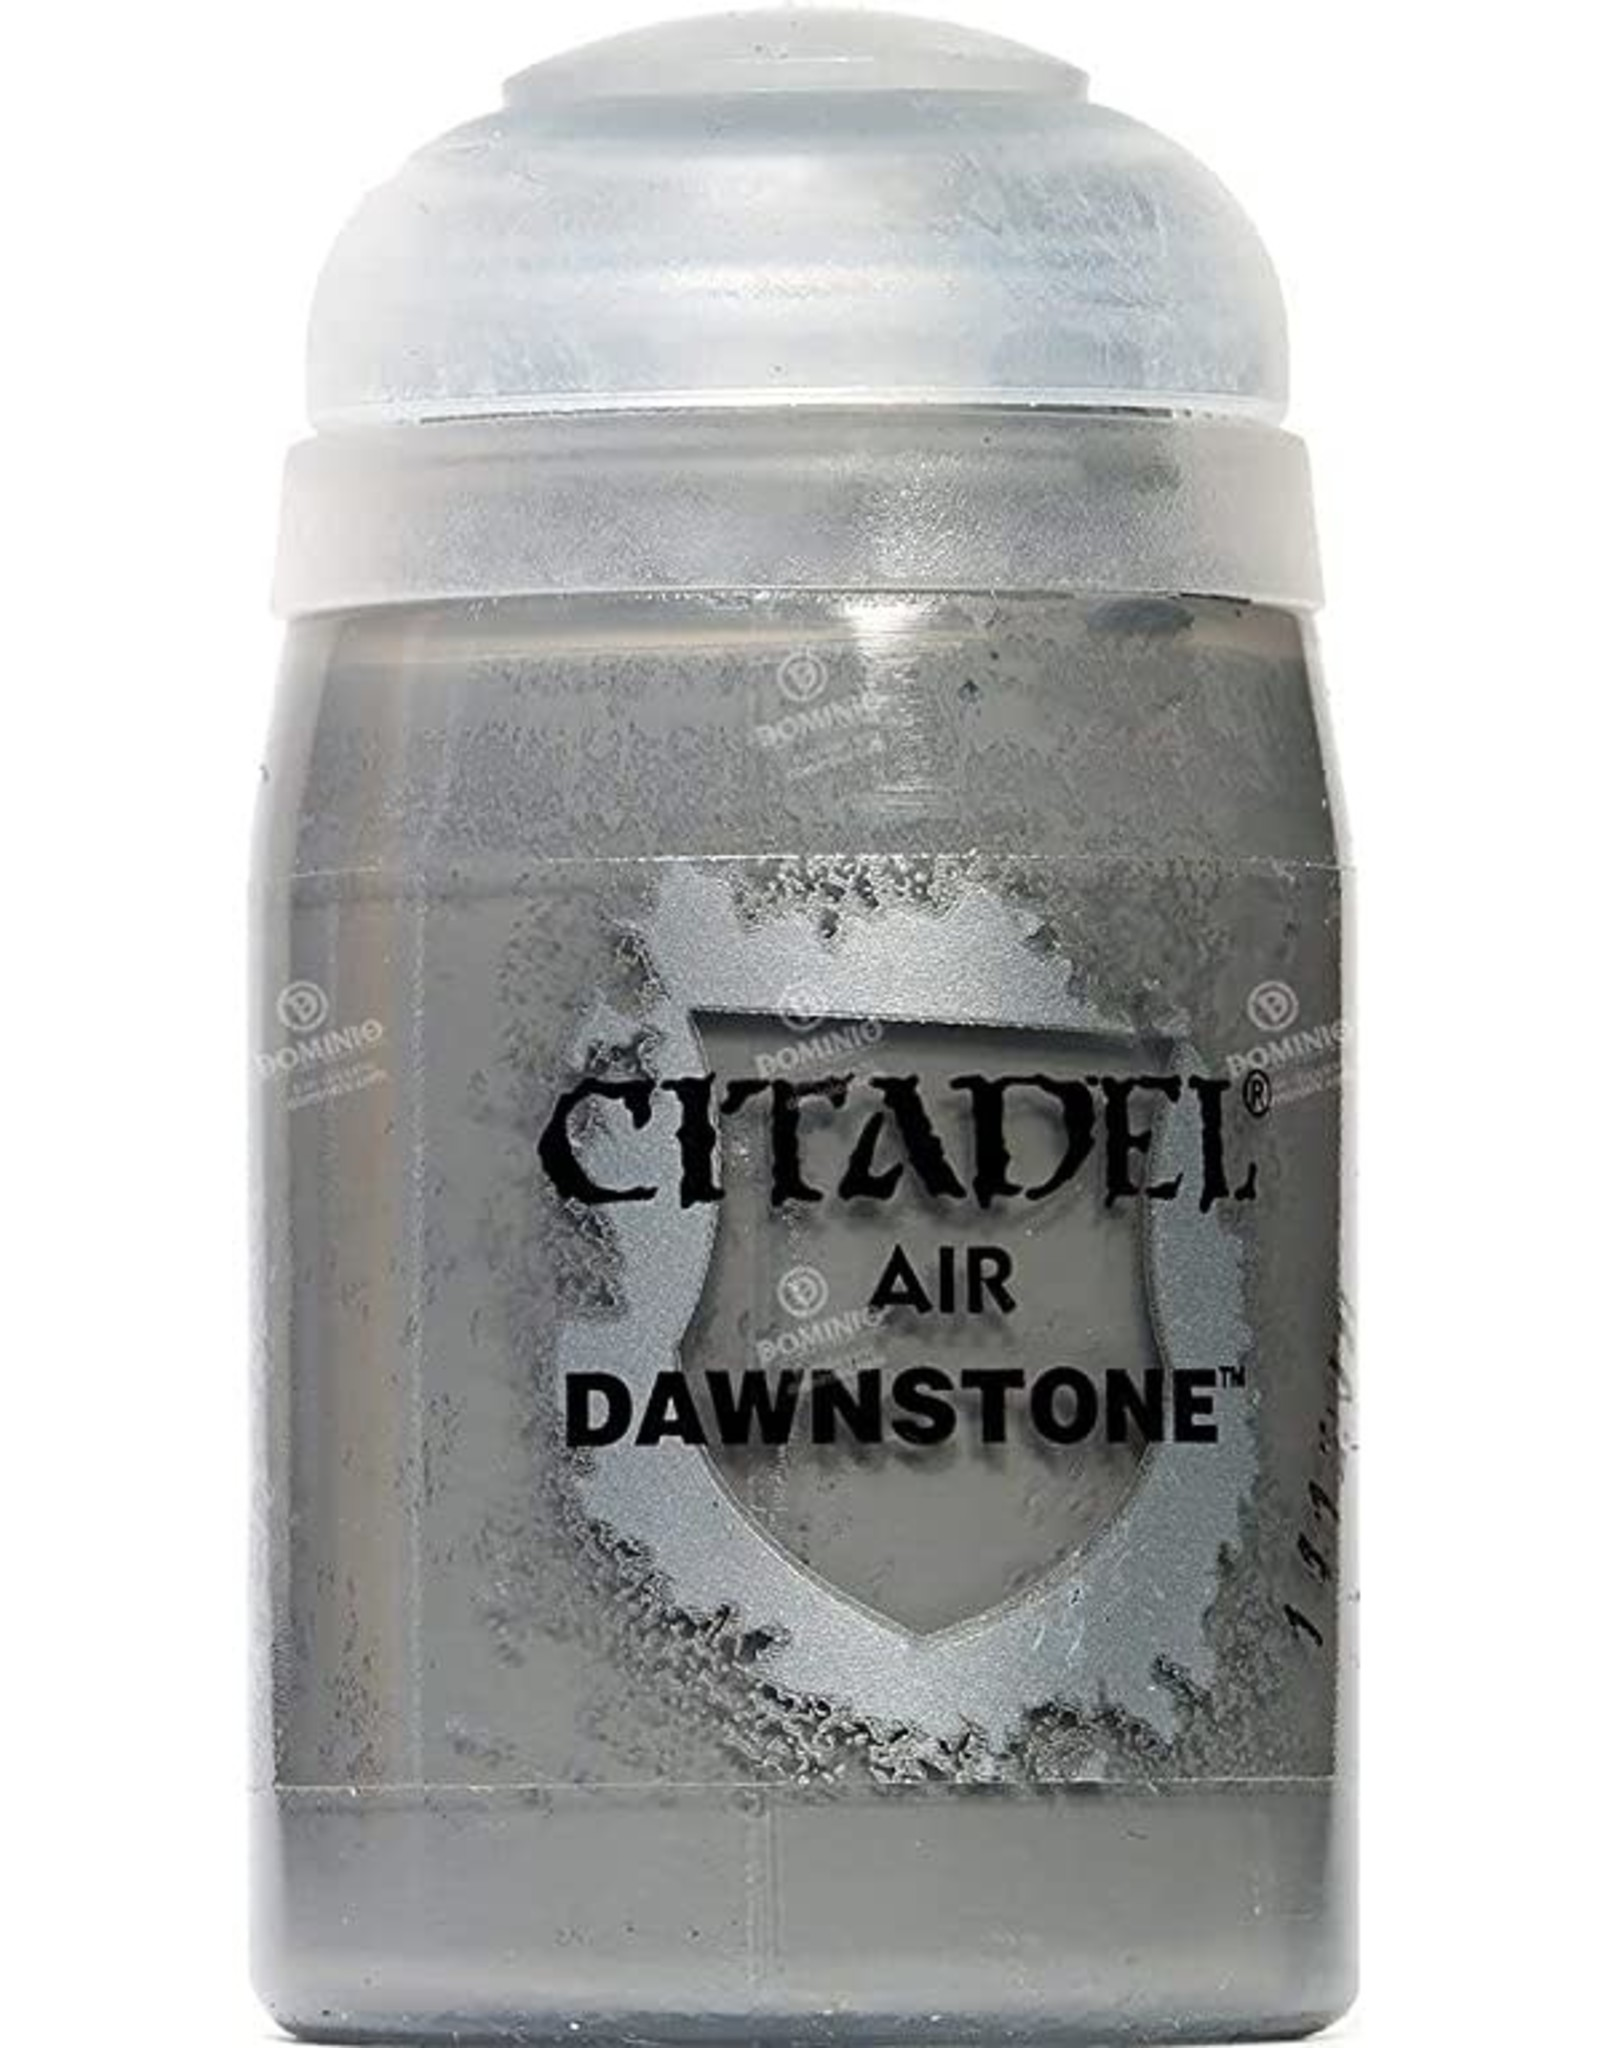 Games Workshop Citadel Paint: Dawnstone Air (24 ml)